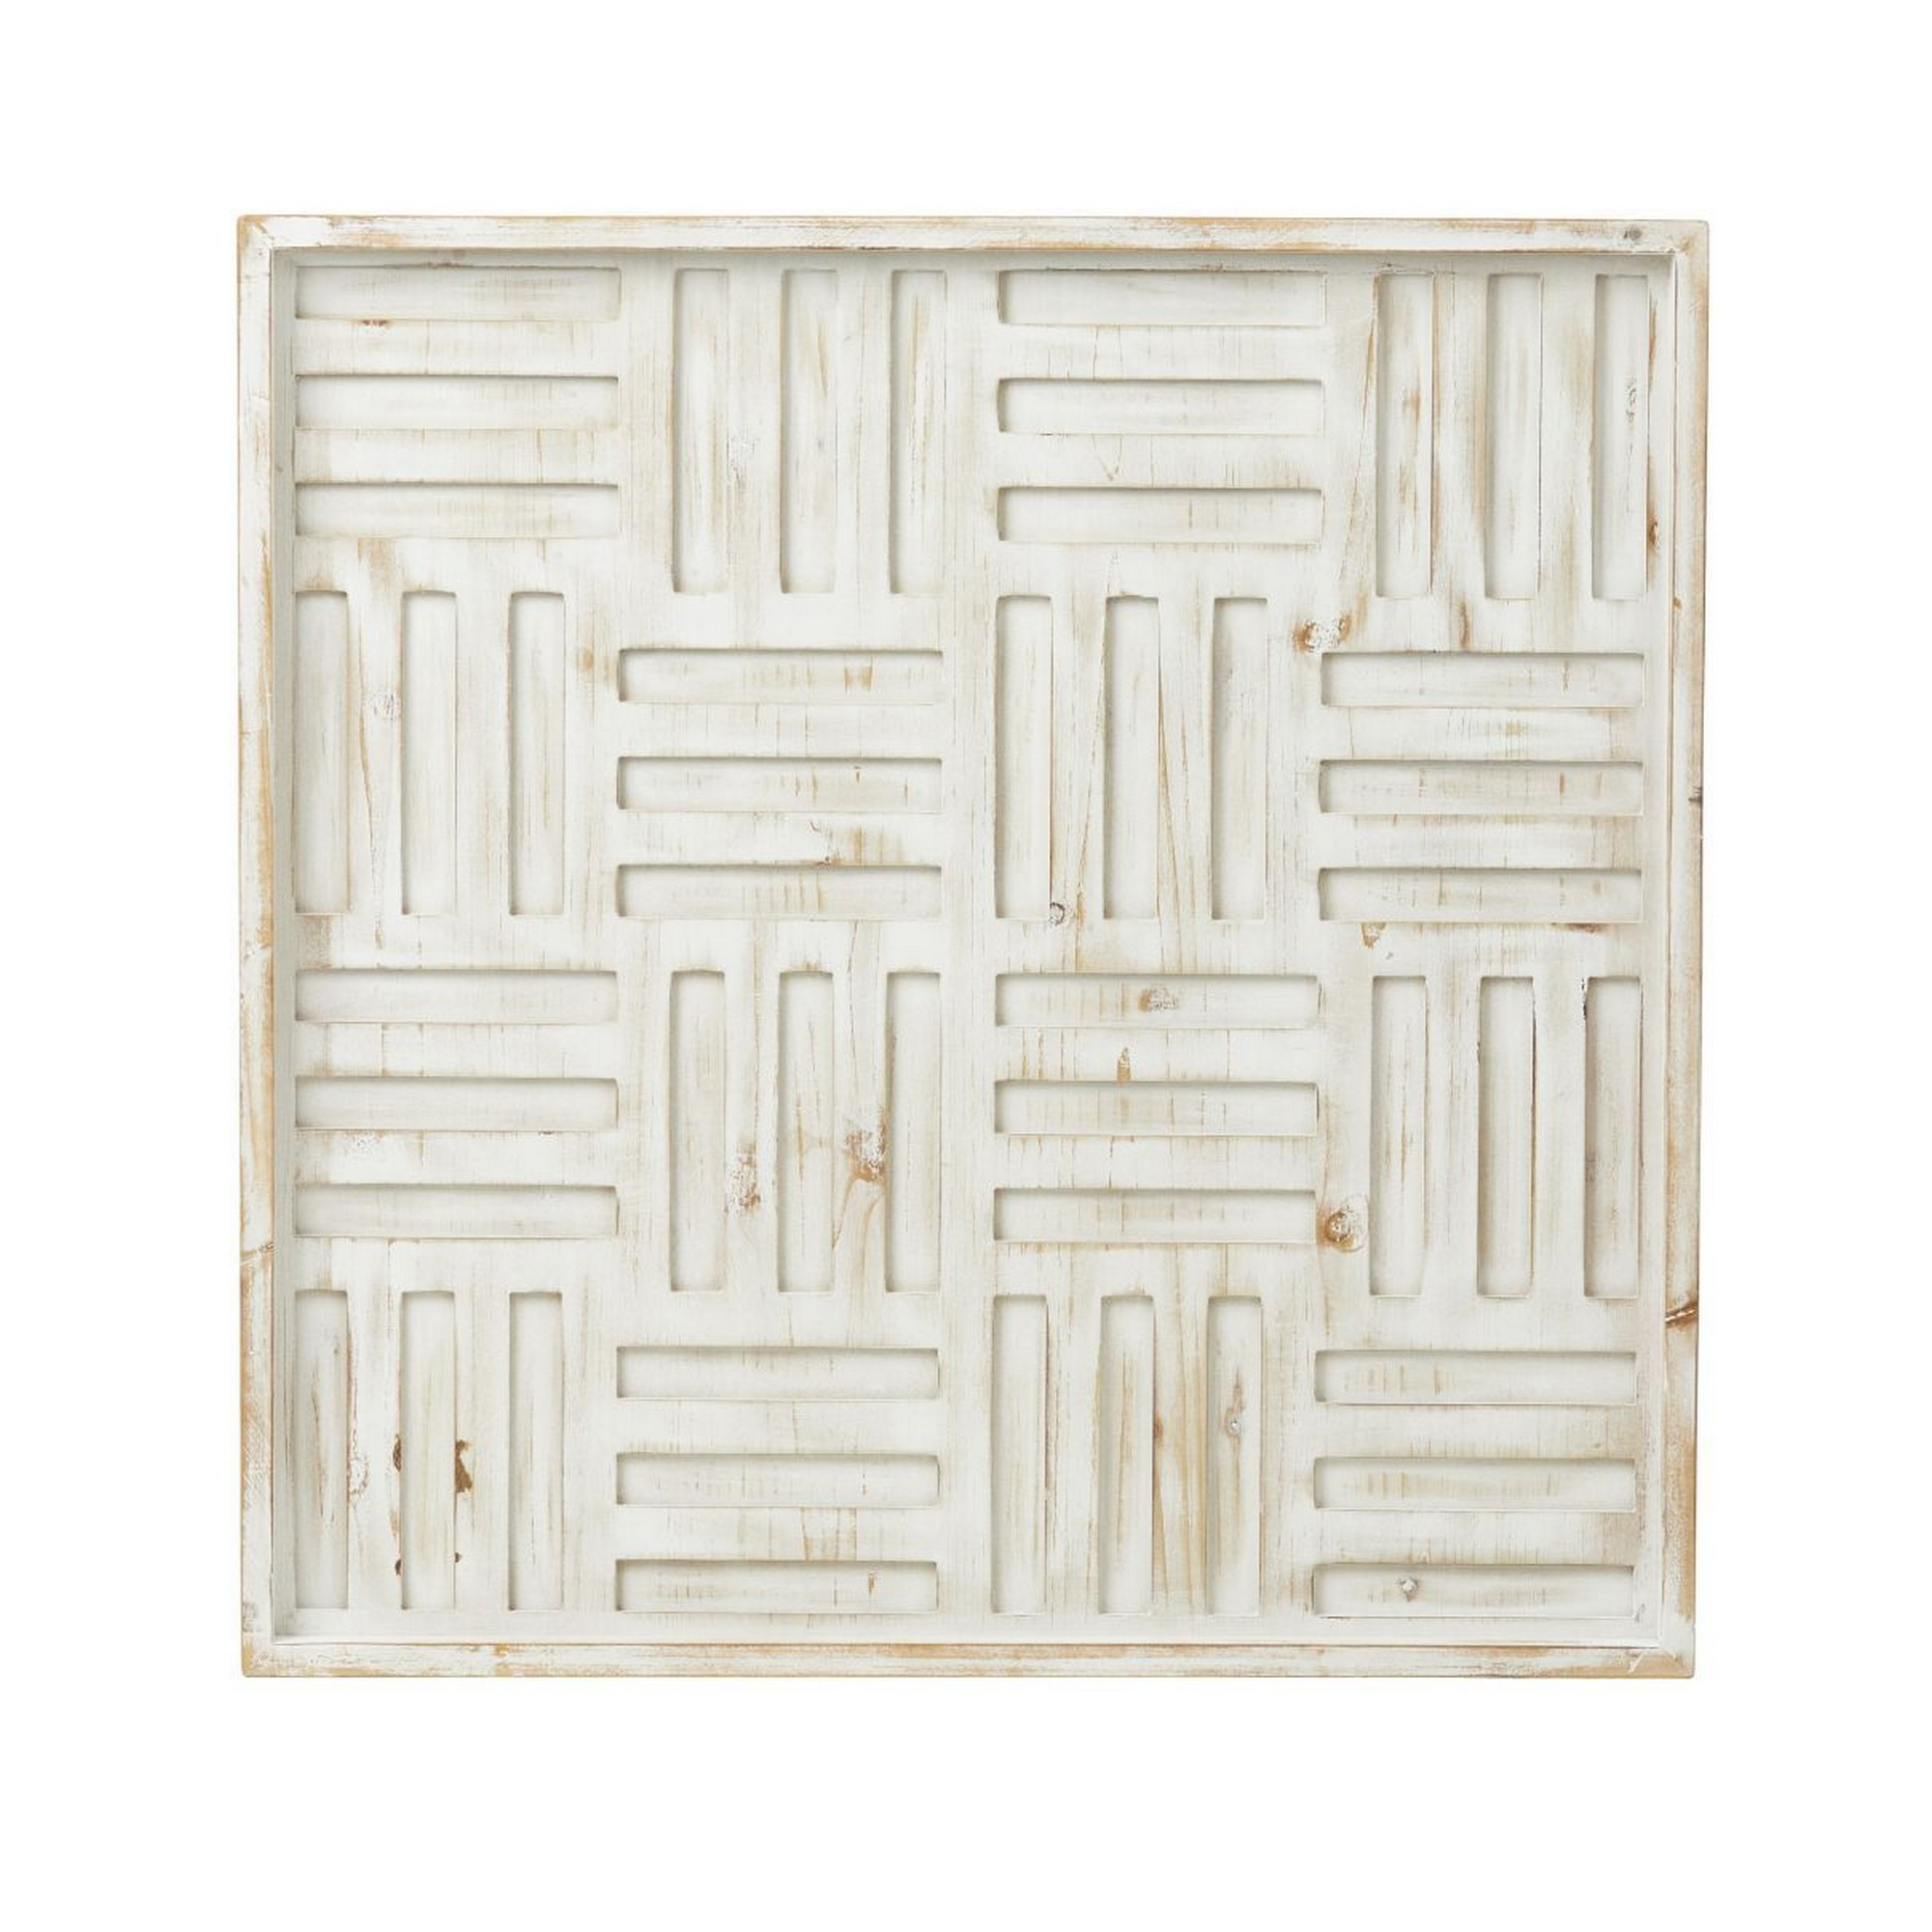 Labyrinth Fir Timber Wall Decor, 60cm